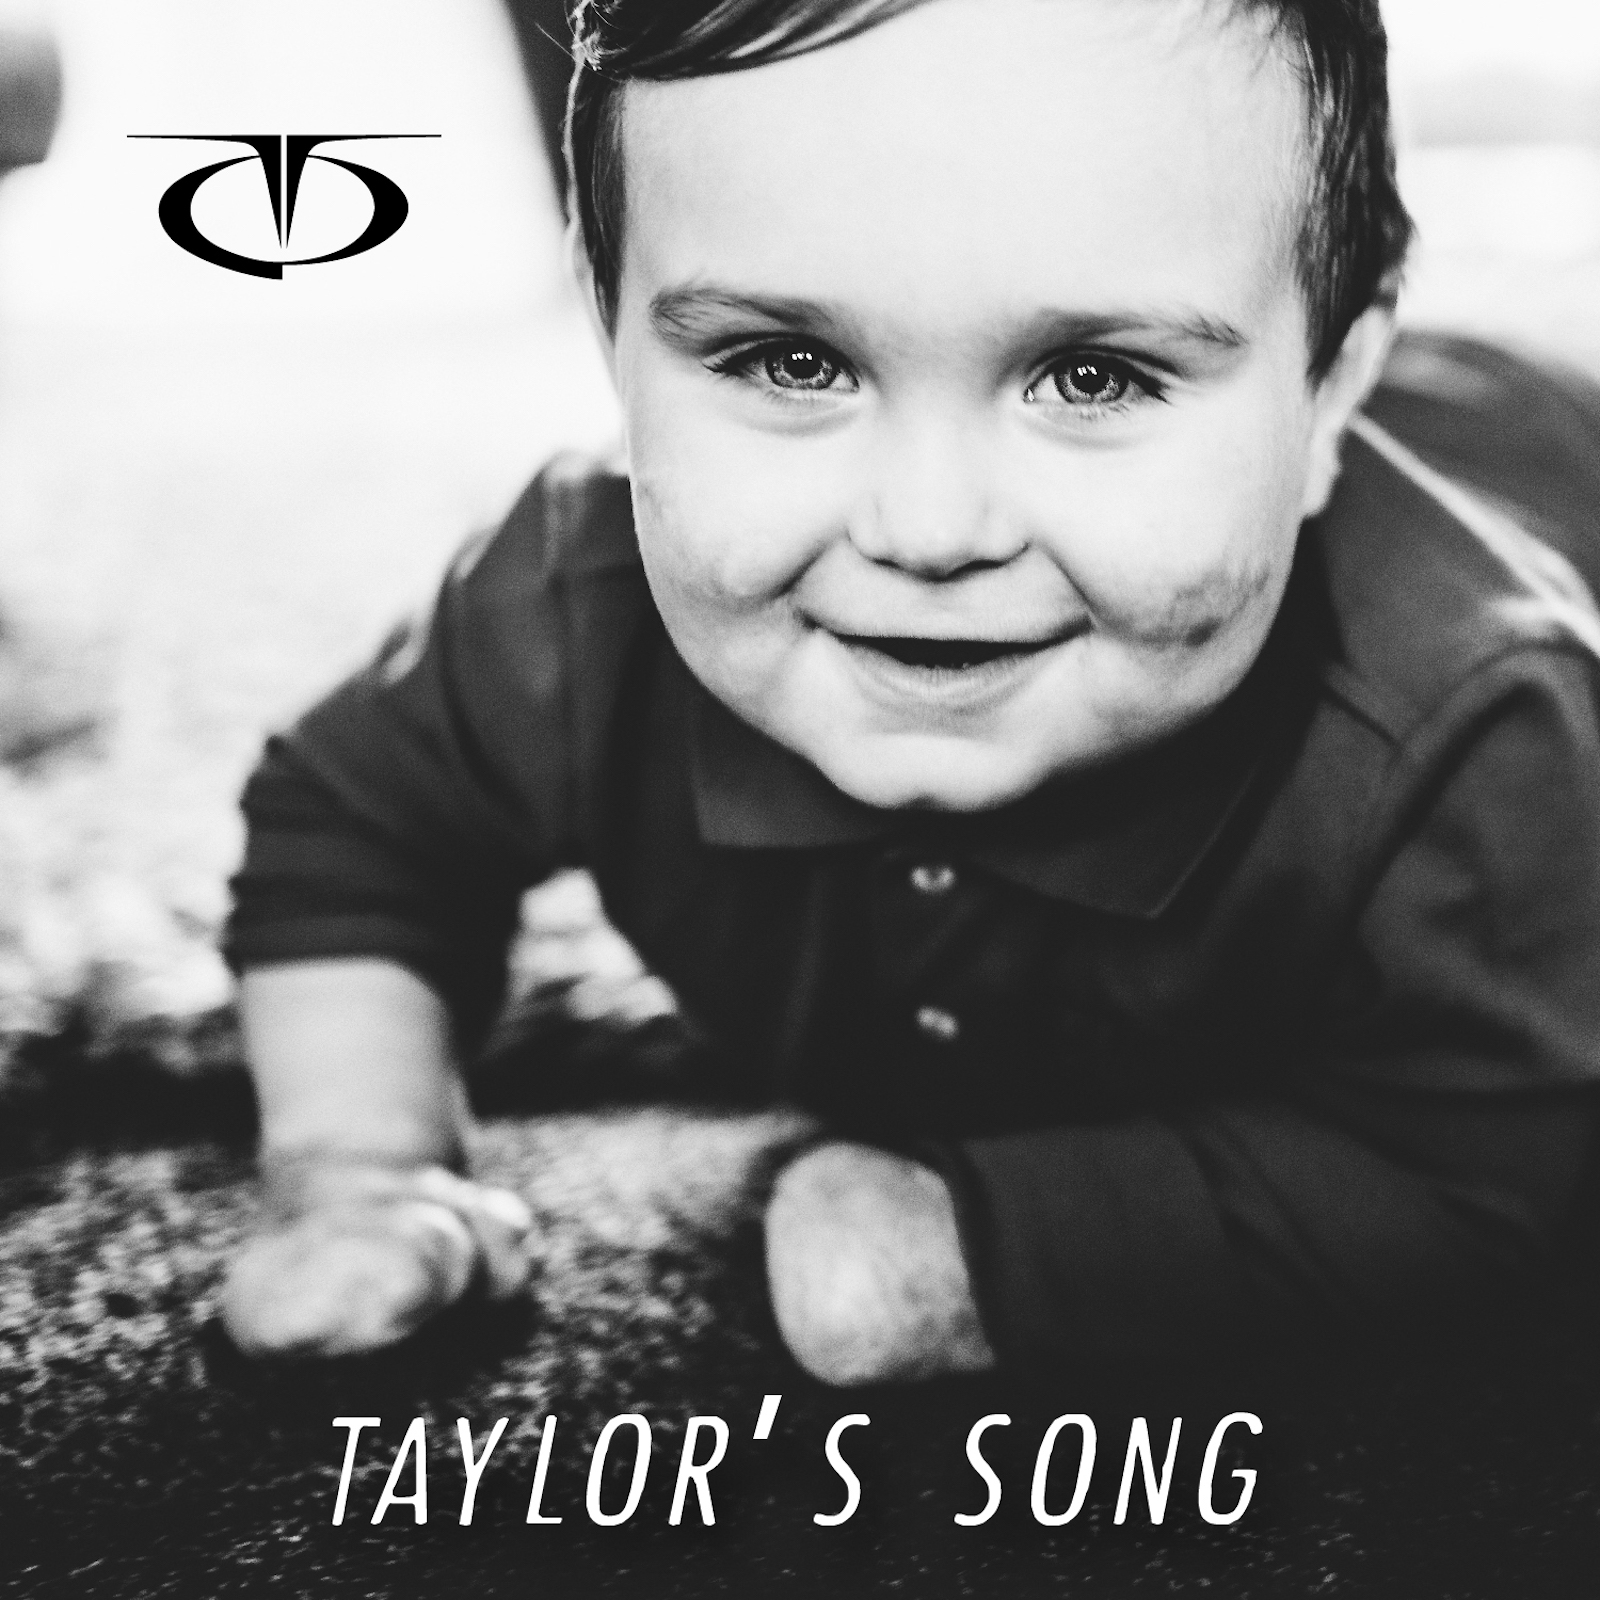 Taylor's Song